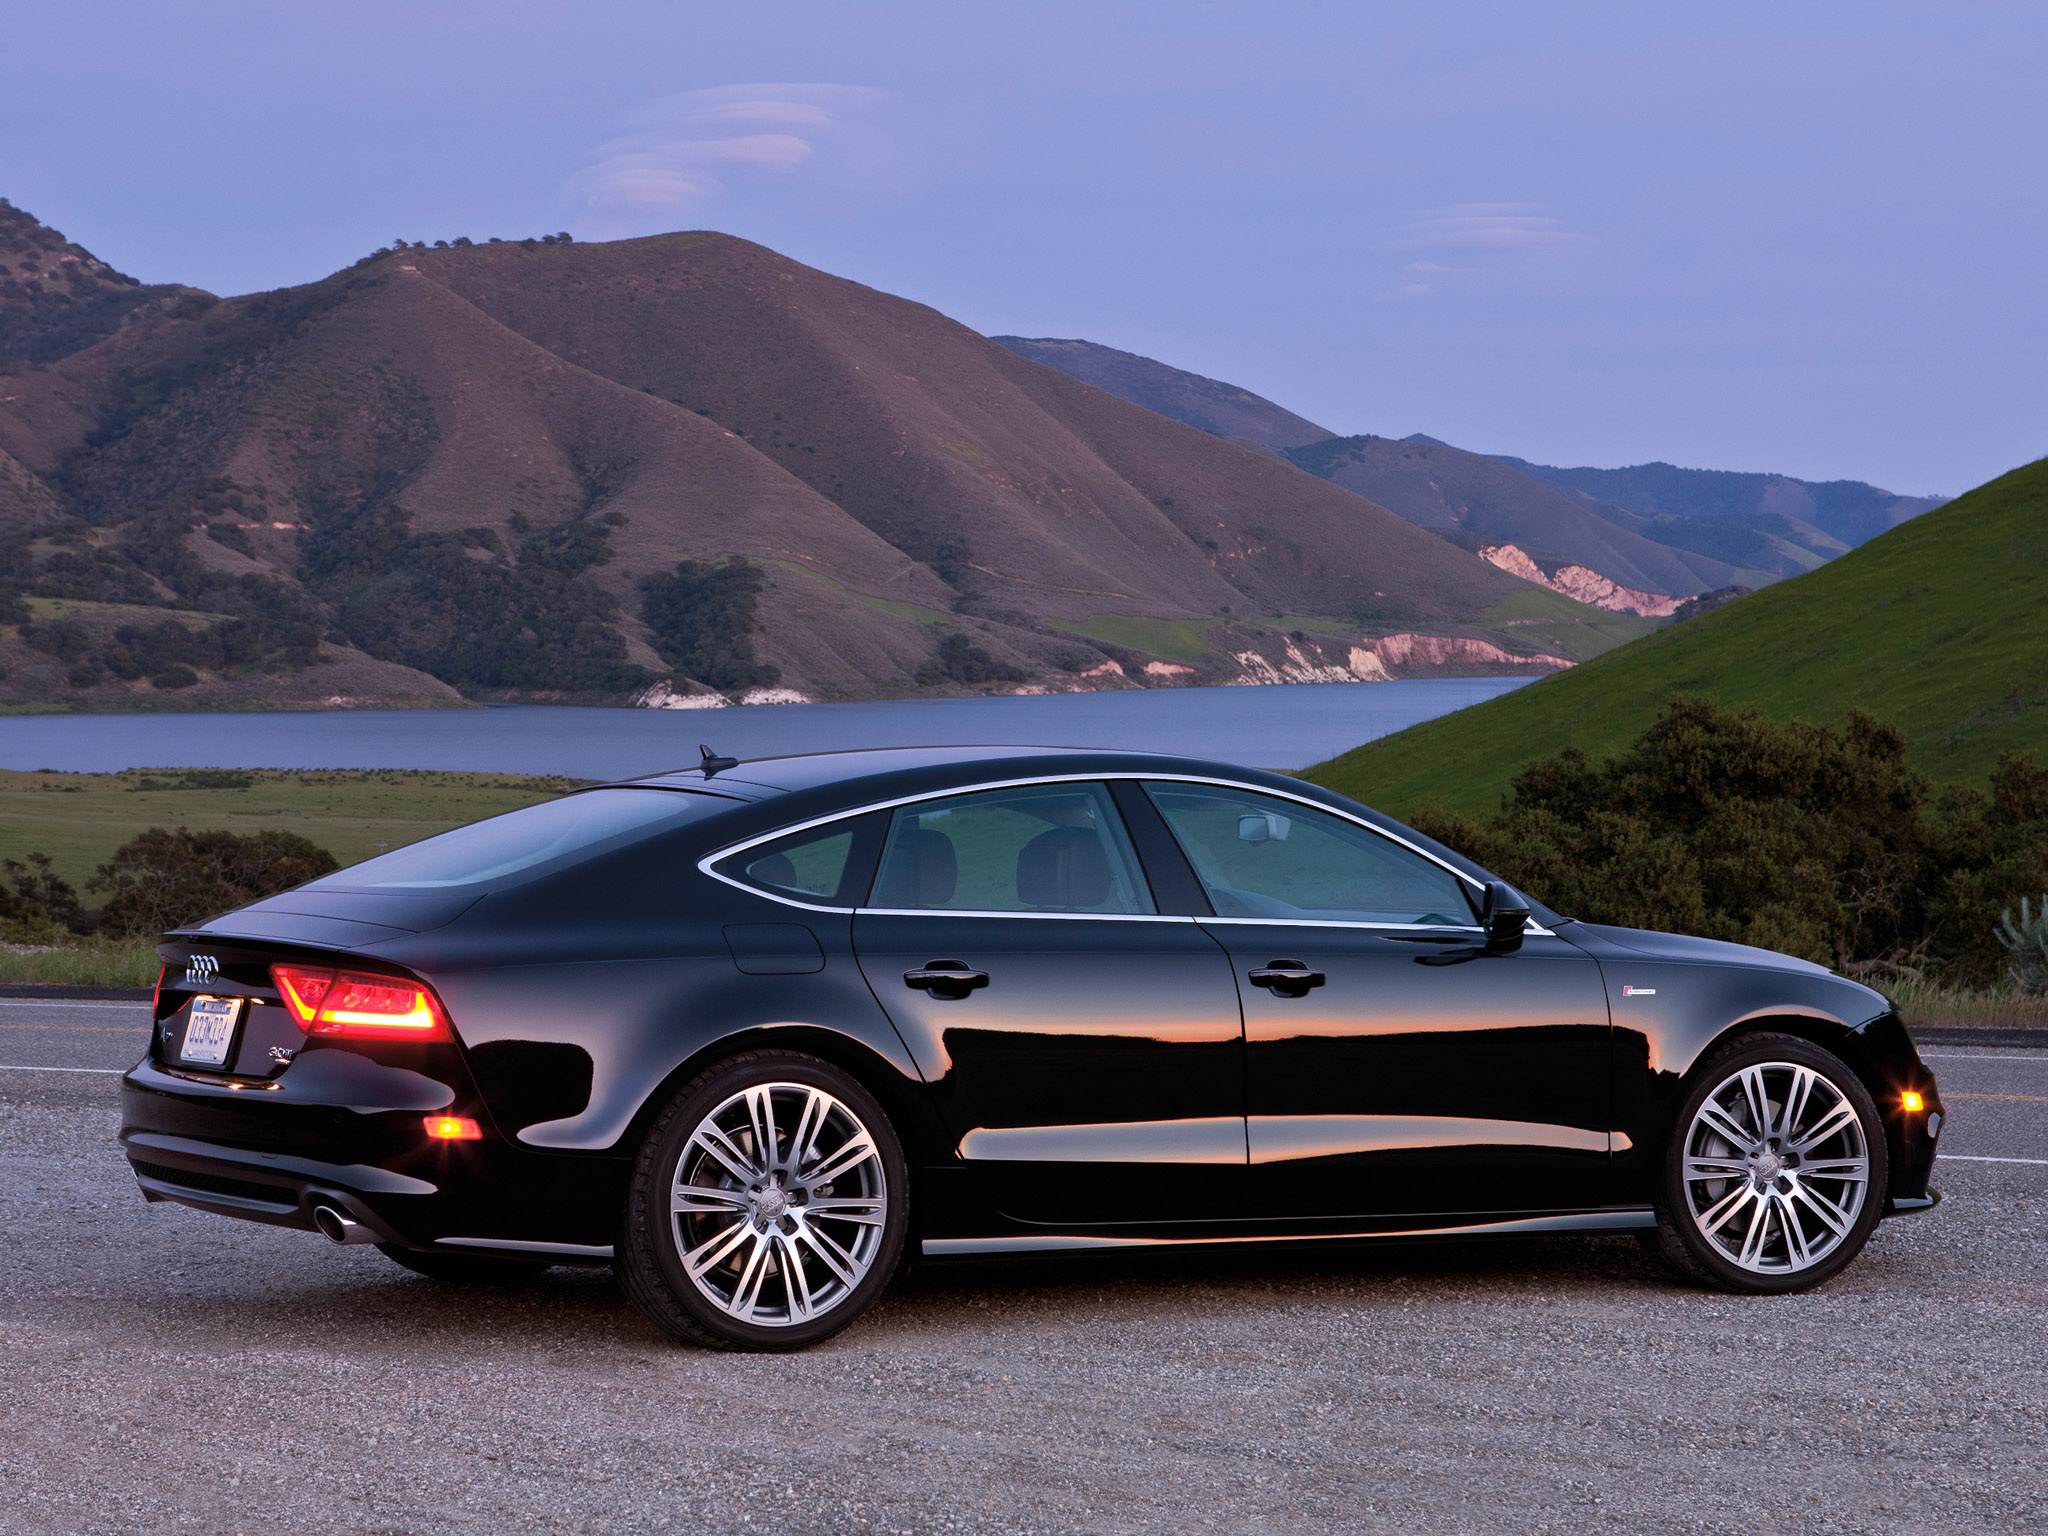 audi a7 sportback 3 0t s line usa 2011 audi a7 sportback 3. Black Bedroom Furniture Sets. Home Design Ideas